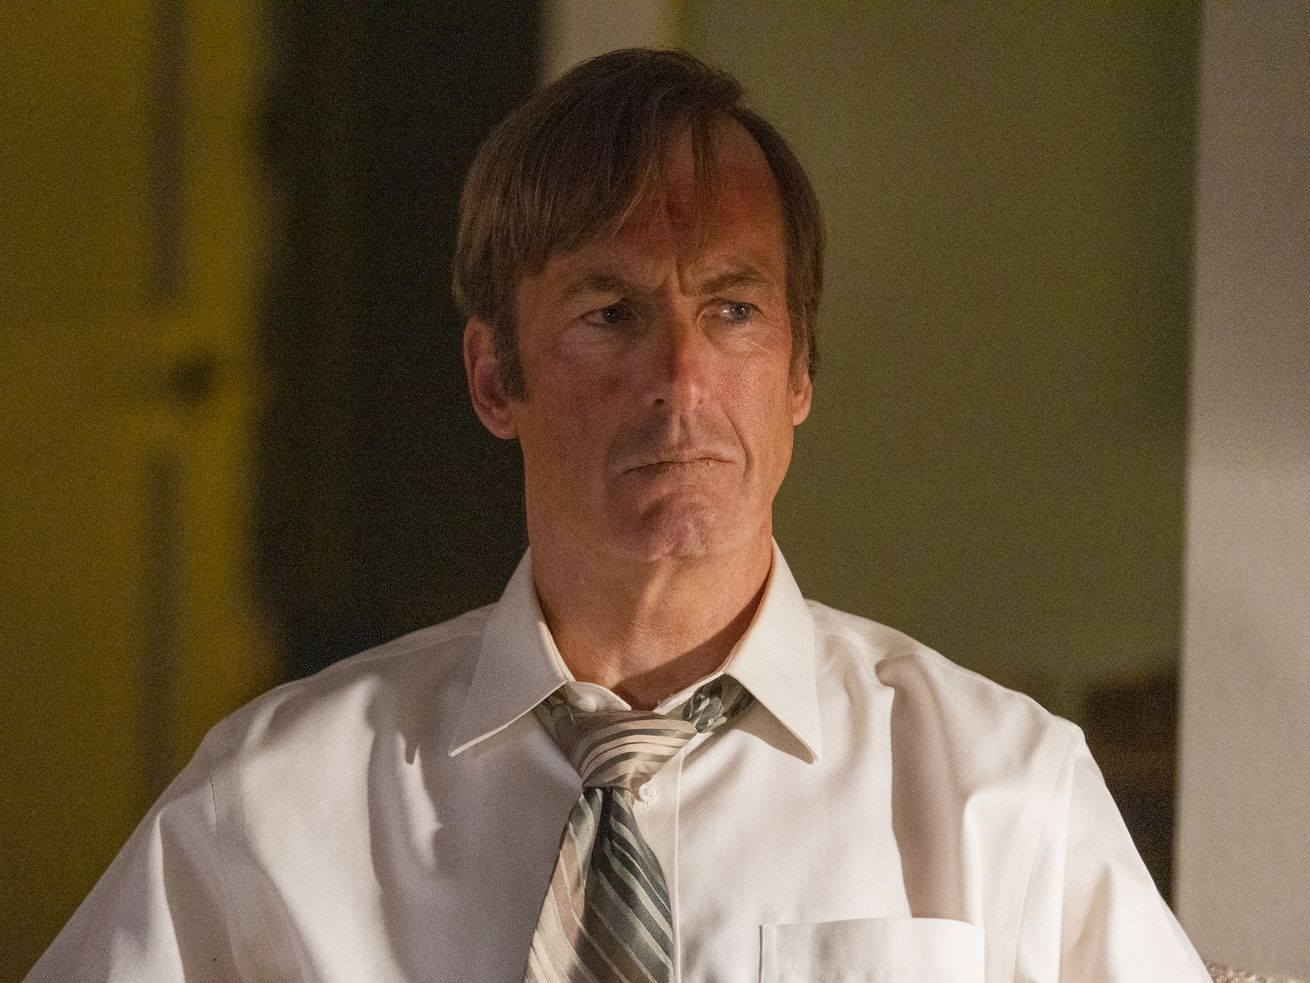 Bob Odenkirk collapses on 'Better Call Saul' set